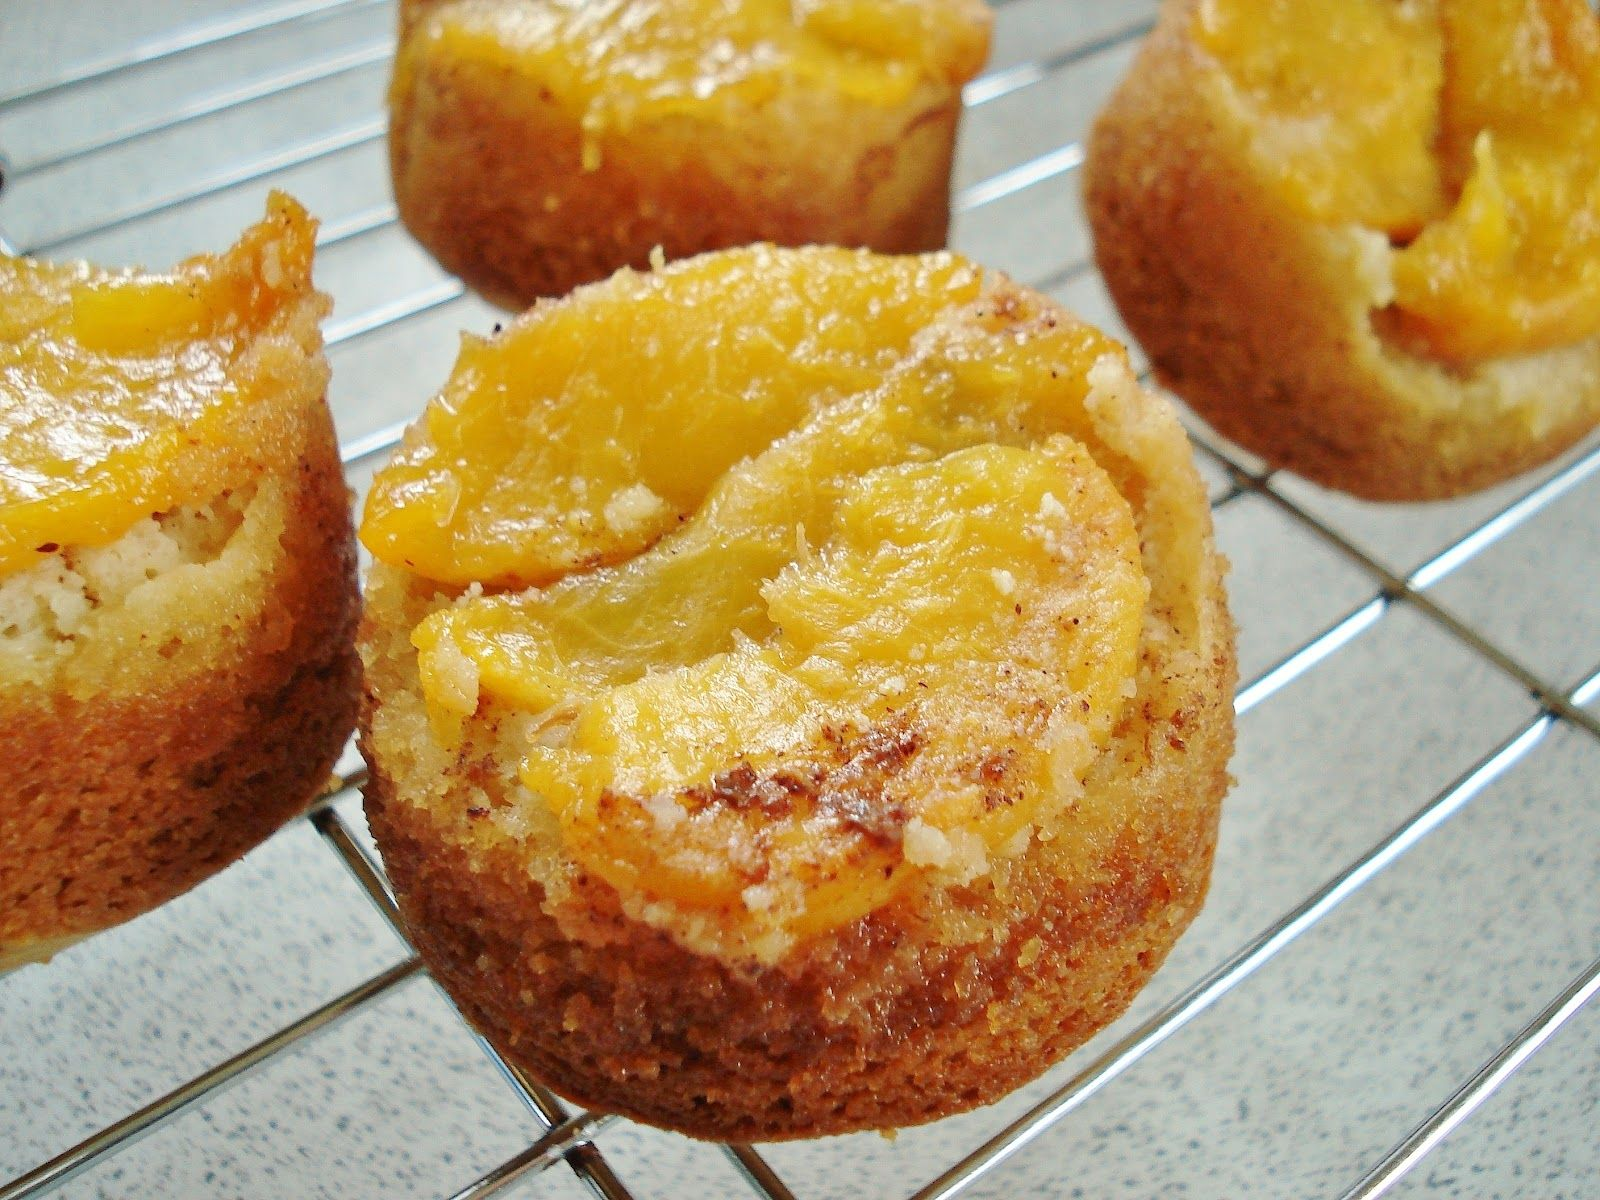 Peach pudding | Grain Free Peach Pudding Cakes & Peach Muffins GF SCD | Gluten Free ...